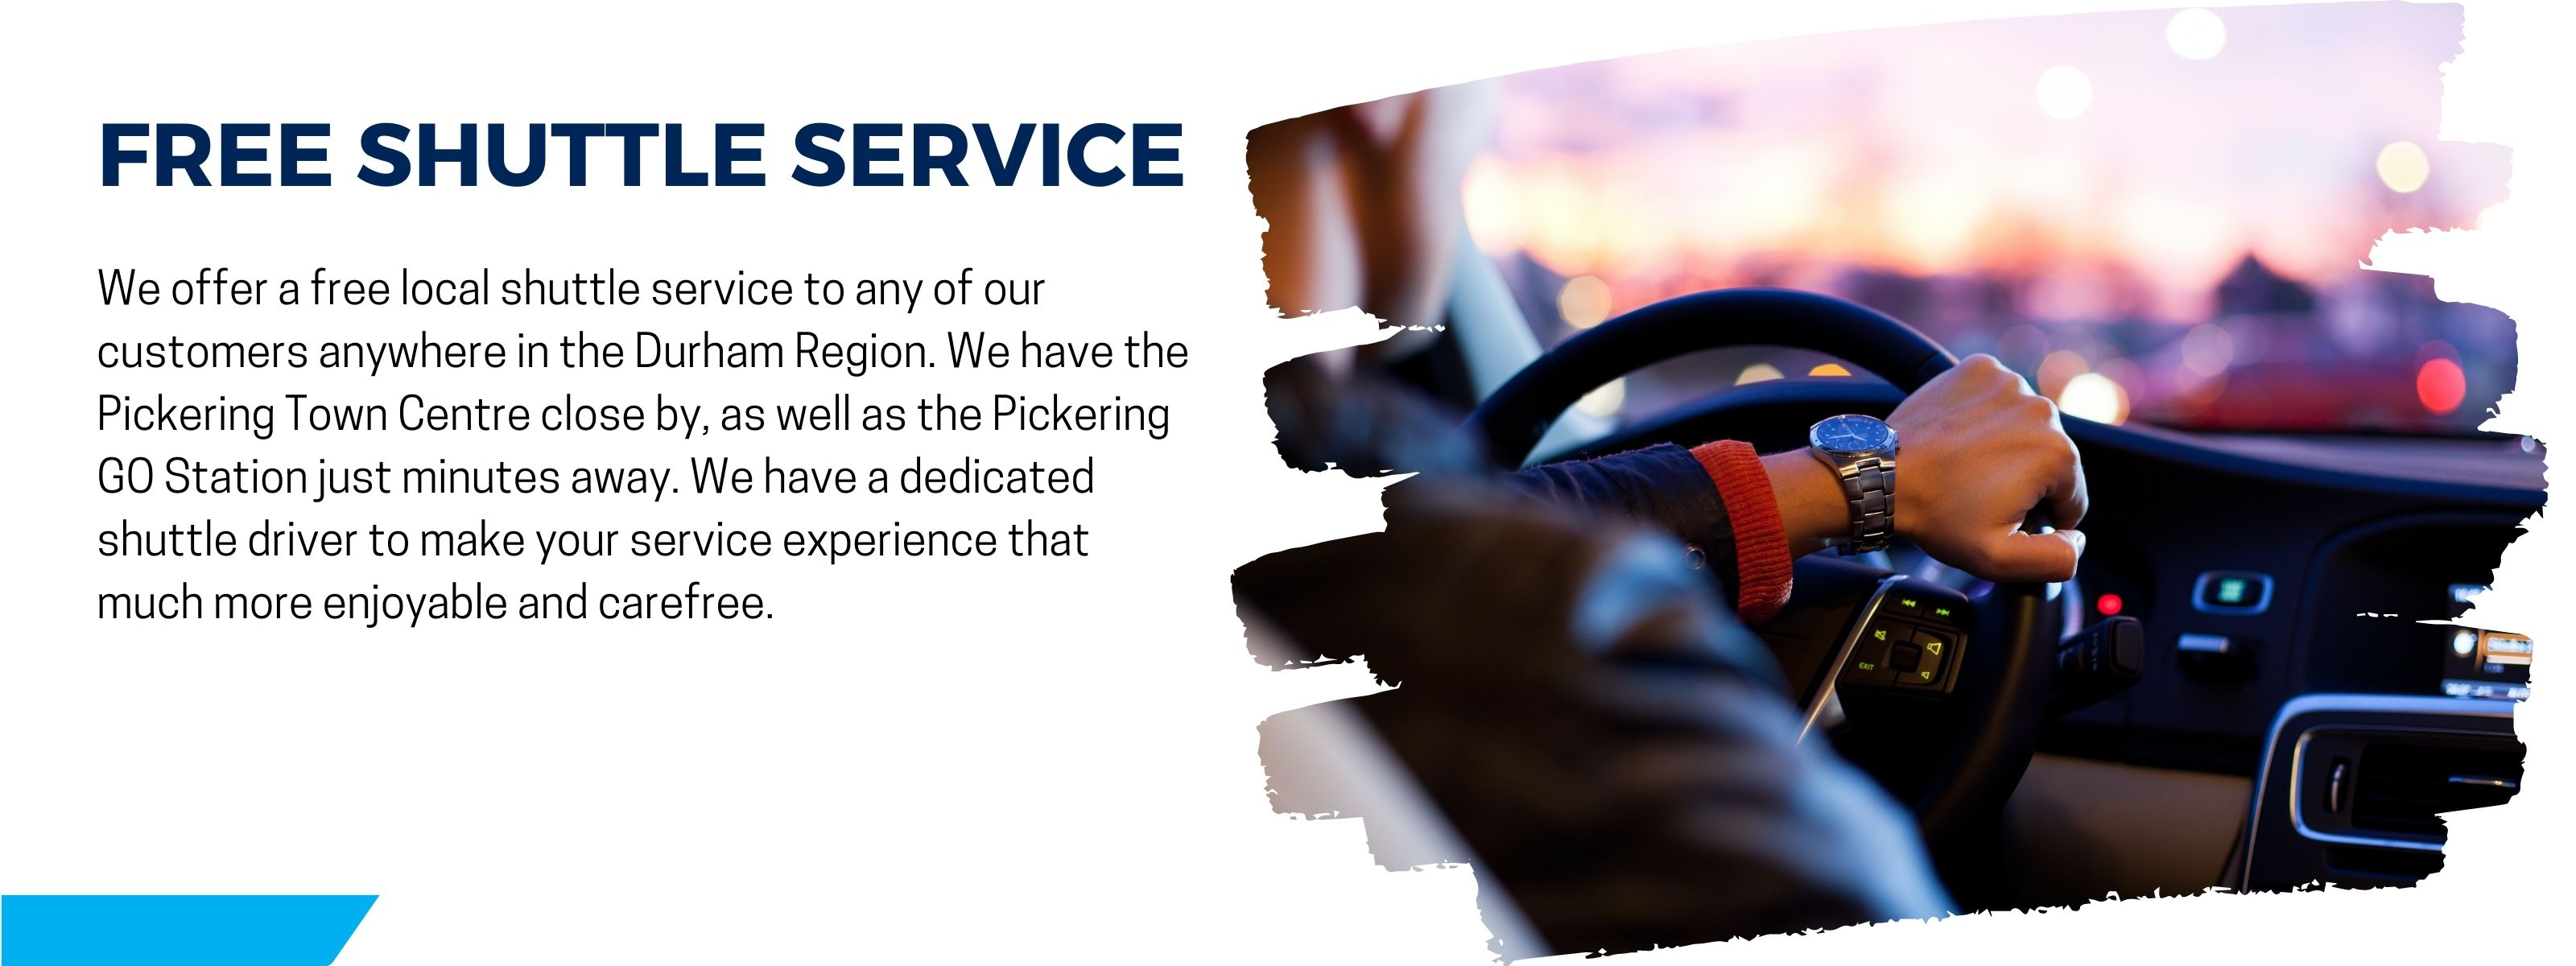 we offer a free shuttle service to anywhere in the GTA to save you time